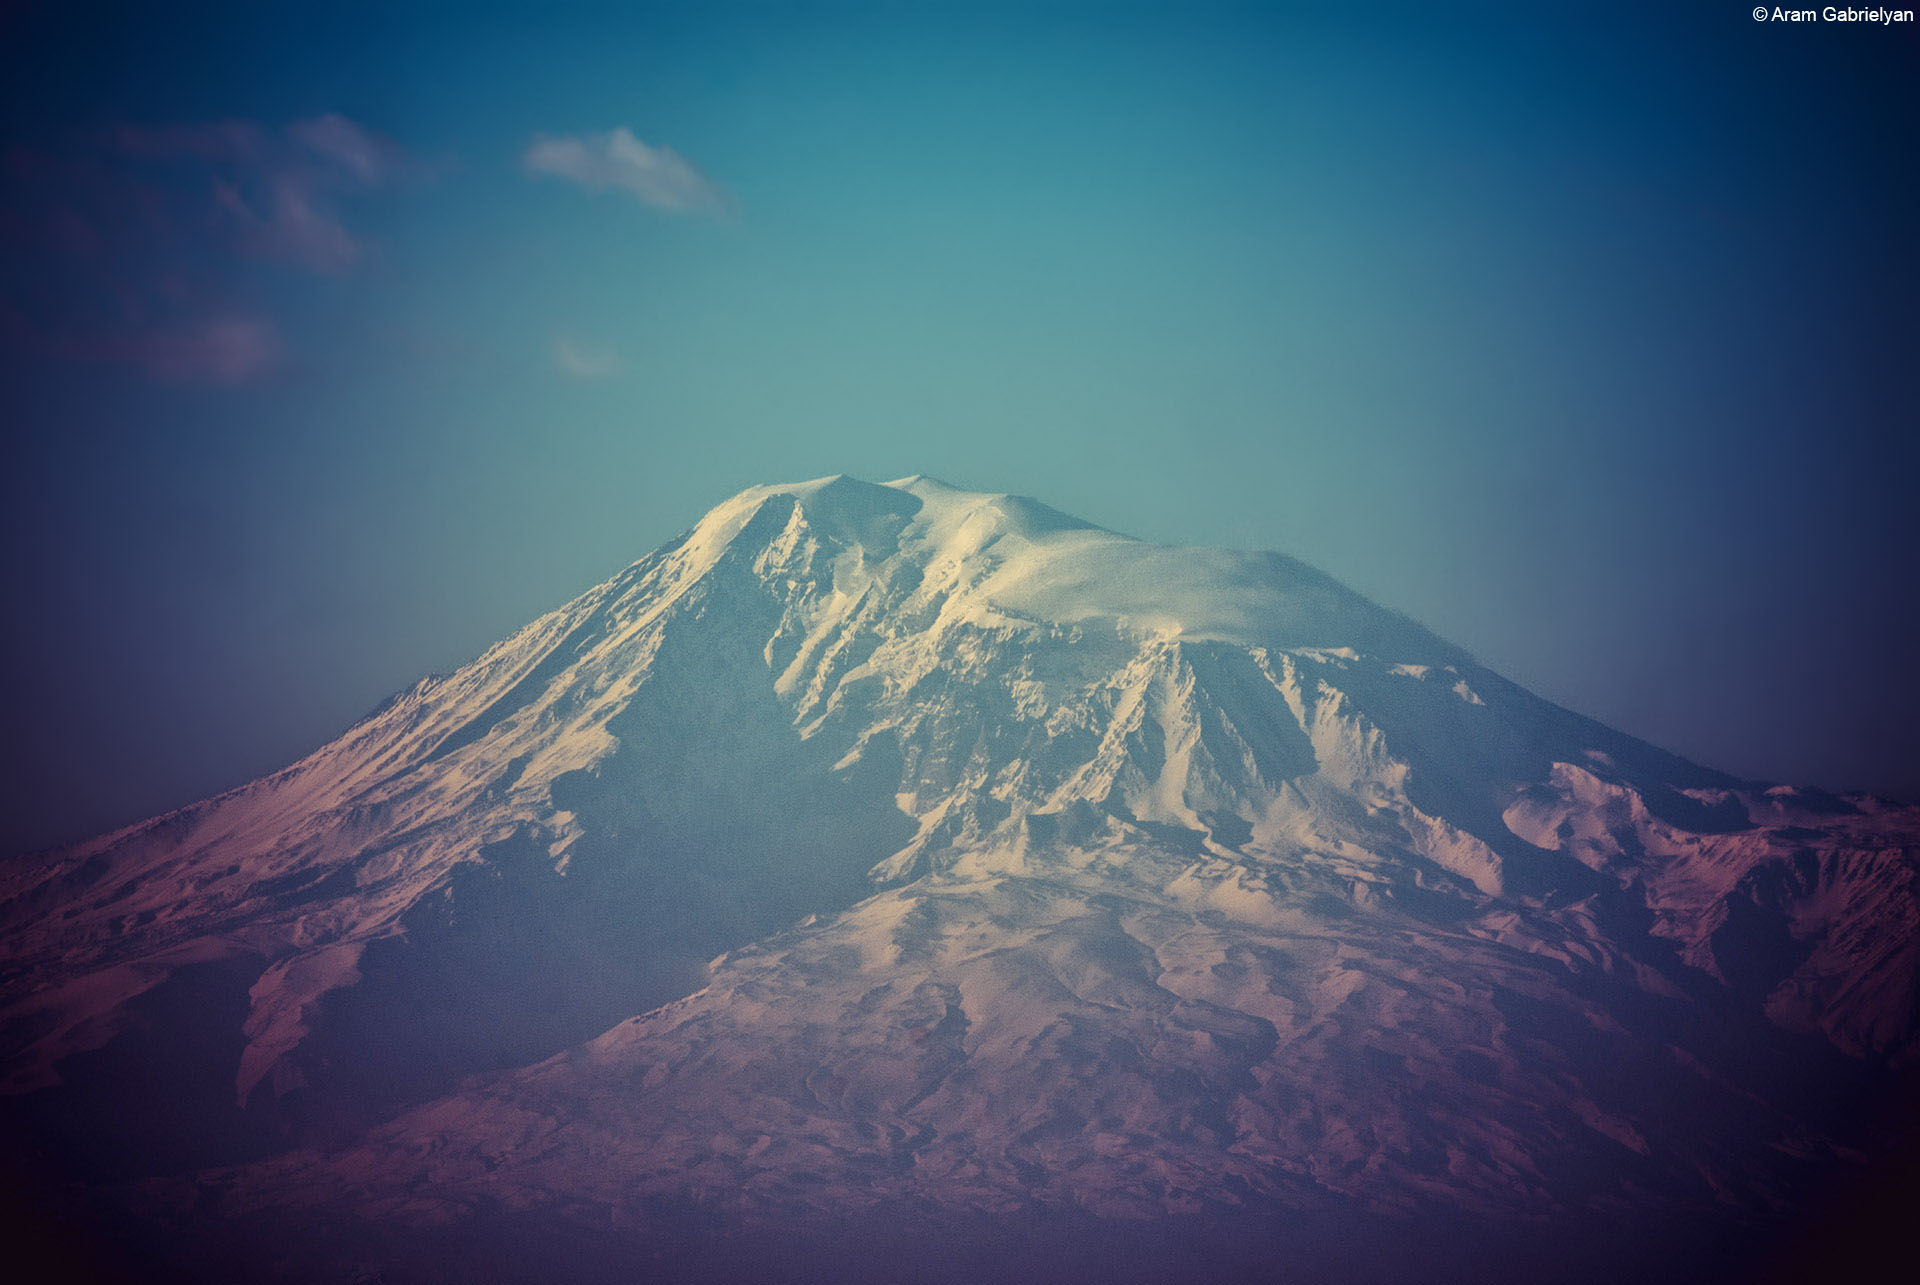 Mountain Ararat (Masis) - Armenia